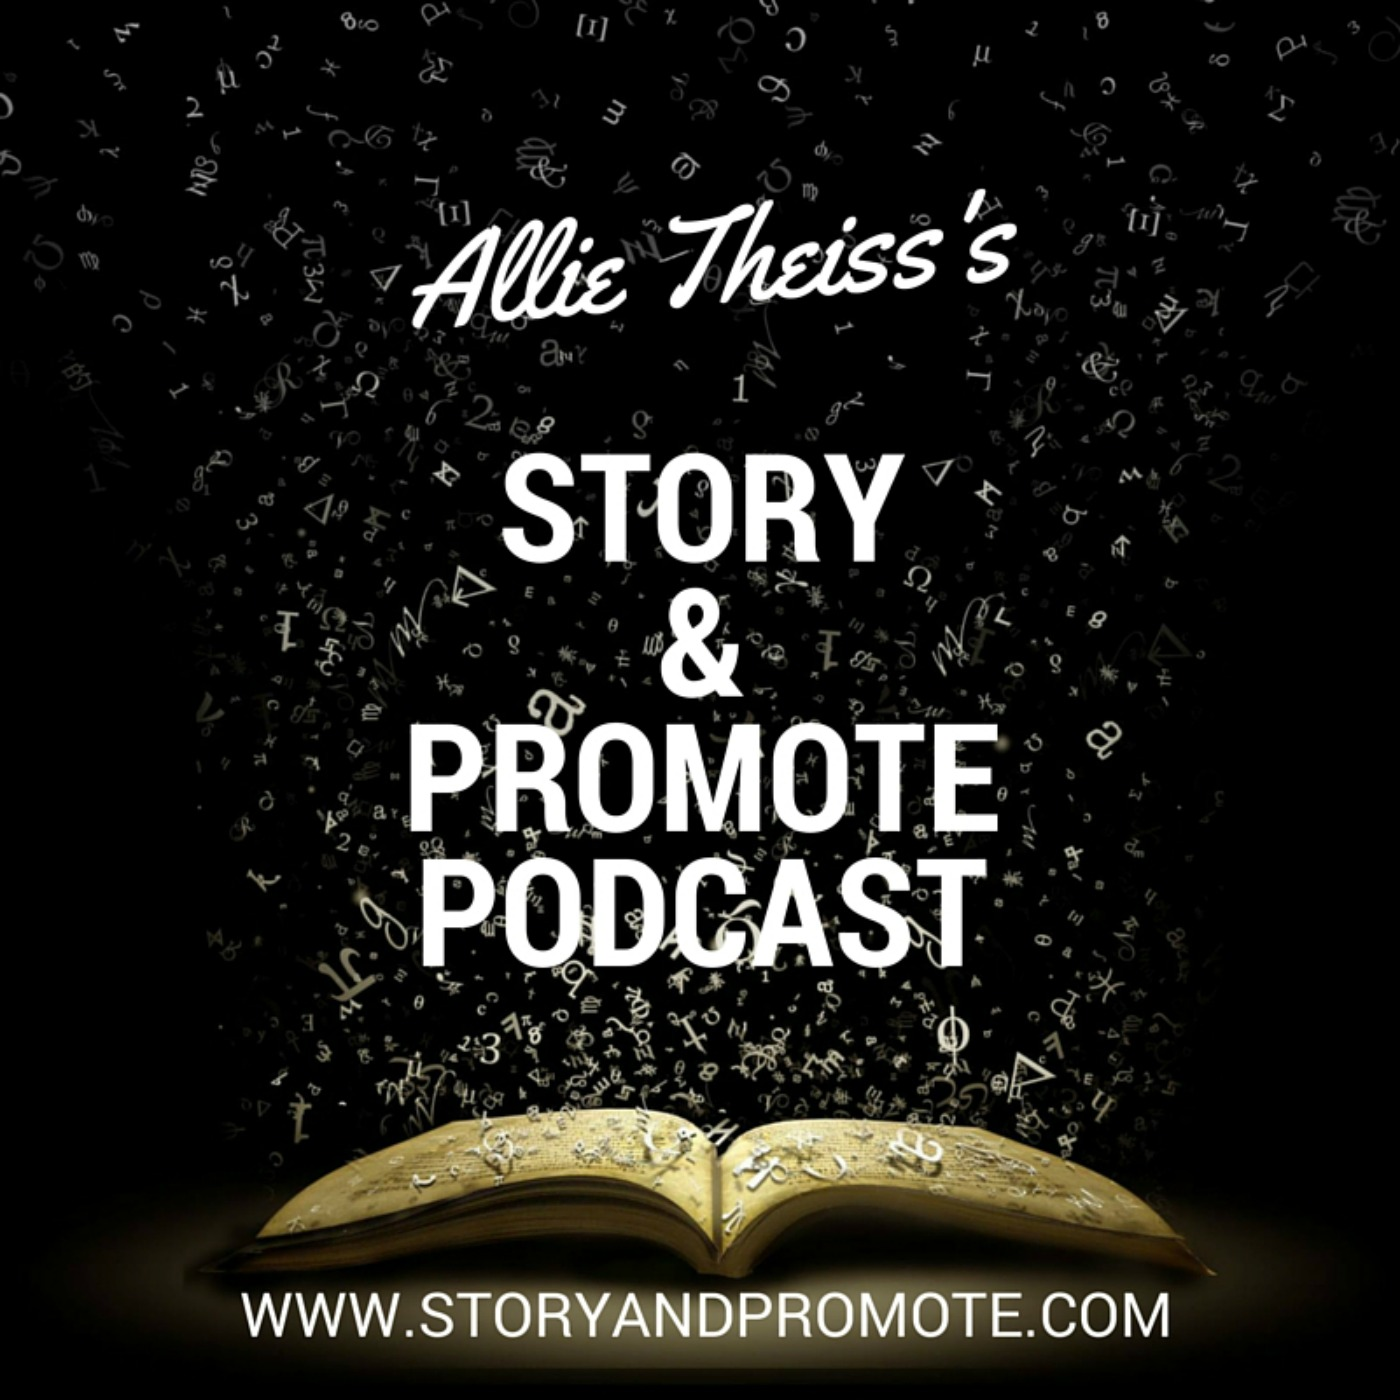 Story & Promote Podcast: Turn Your Book Into A Radio Drama